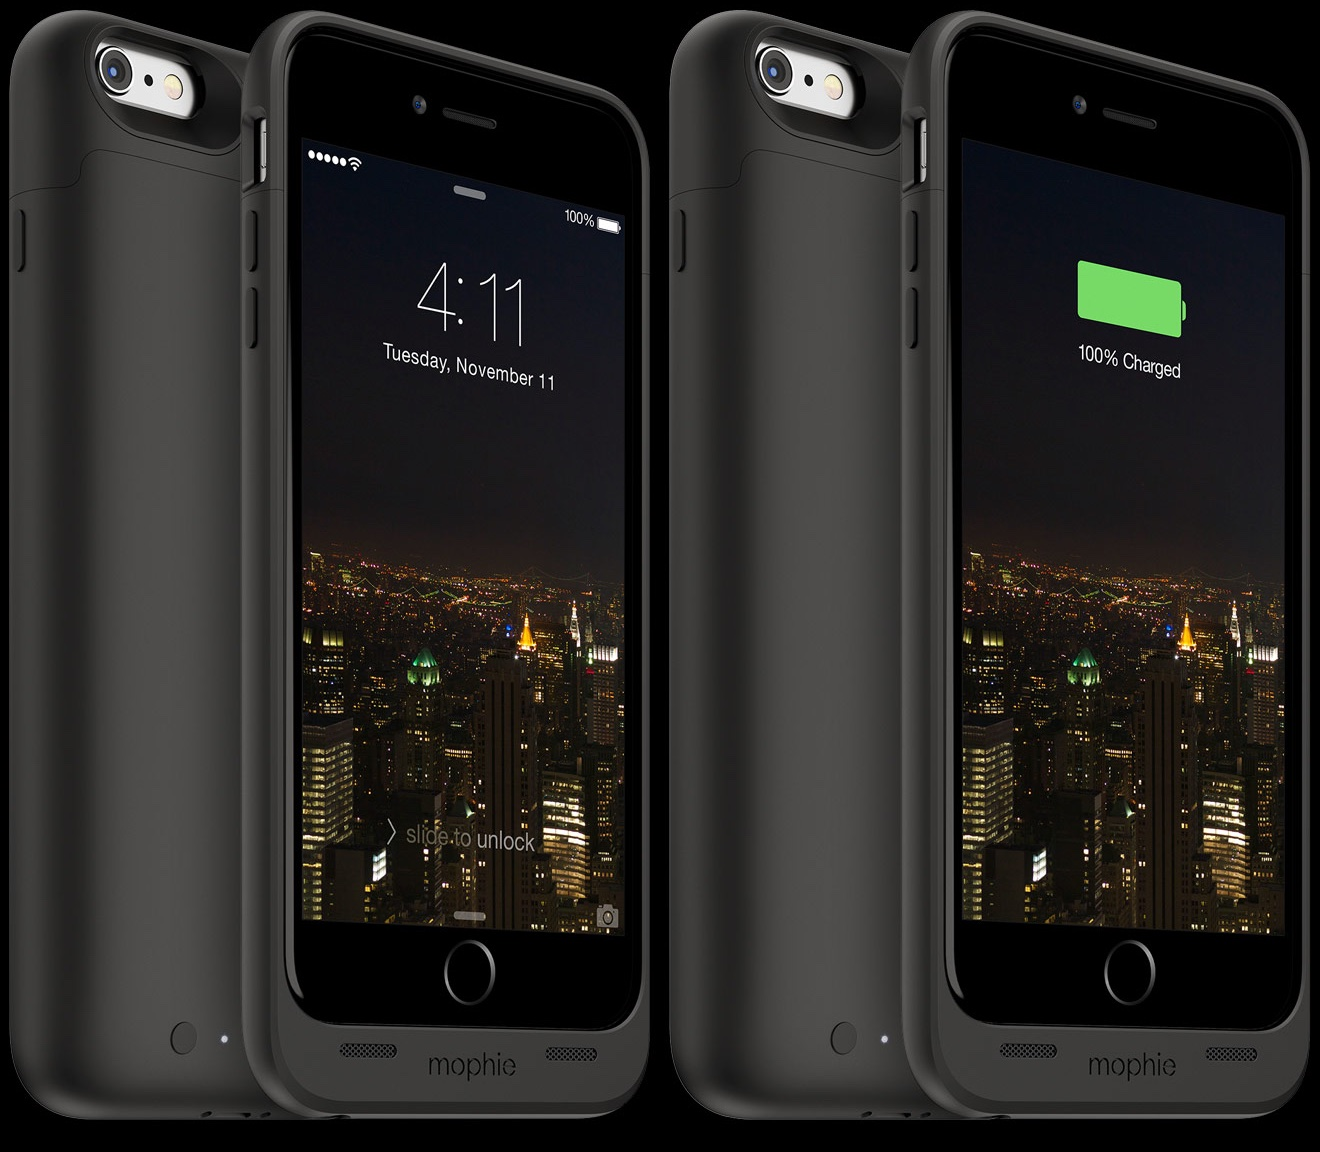 Mophie Juice Pack for iPhone 6 image 002